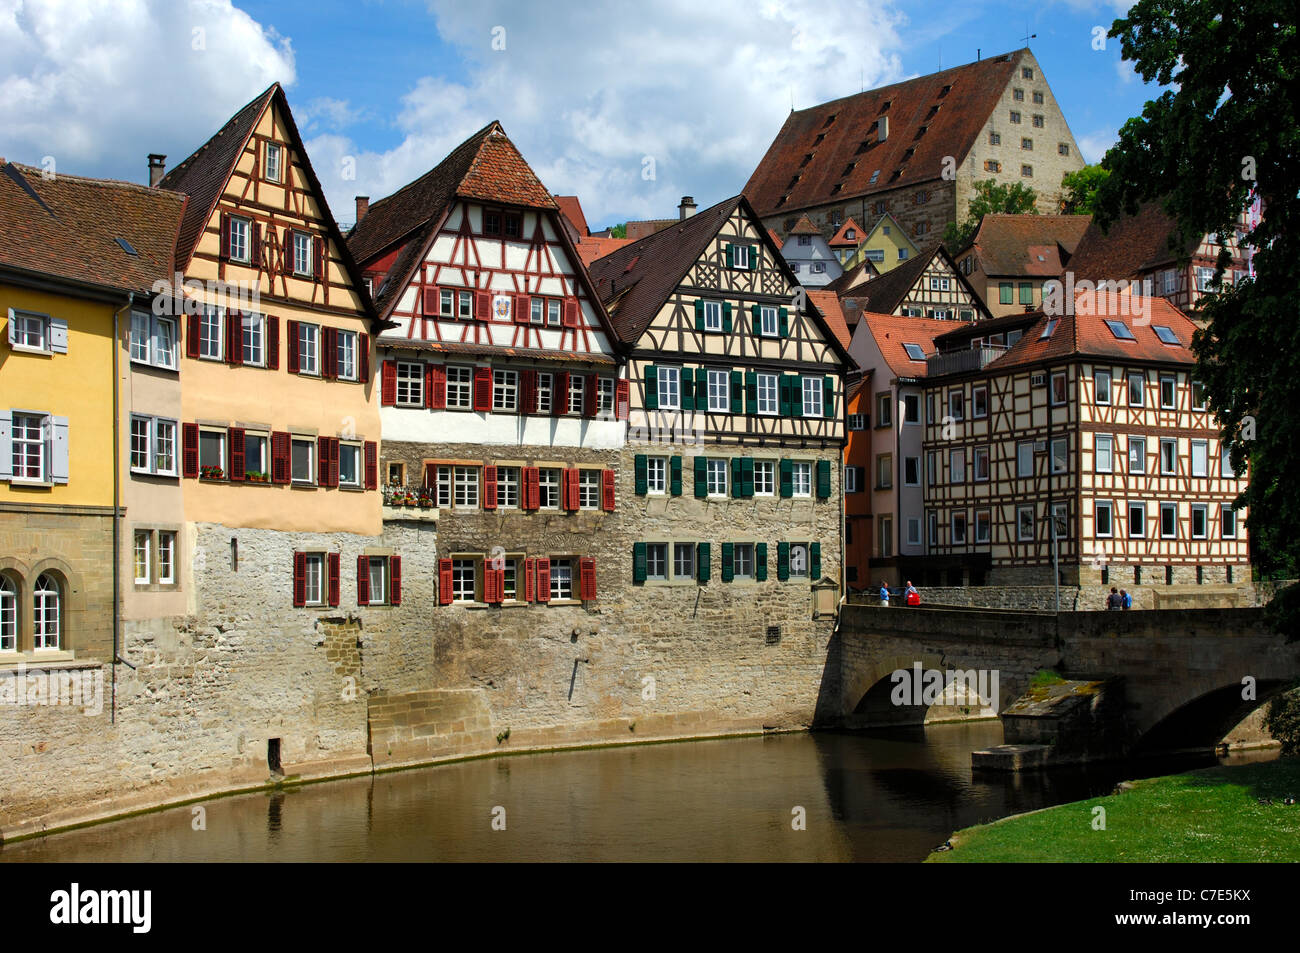 Kocherfront, ensemble of half-timbered houses at the Kocher River, Schwaebisch Hall, Baden-Wuerttemberg, Germany - Stock Image